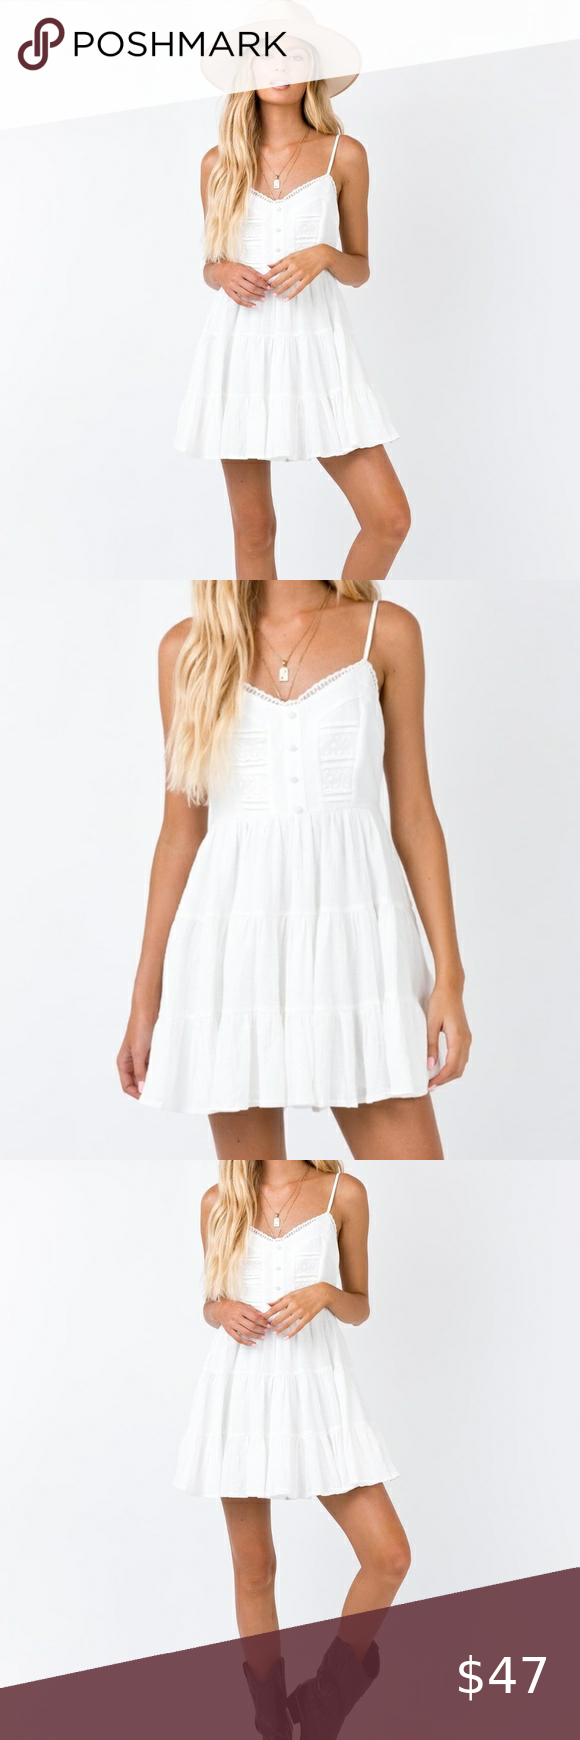 Princess Polly Dlaney White Lace Tiered Mini Dress Mini Dress Dresses Polly Dress [ 1740 x 580 Pixel ]